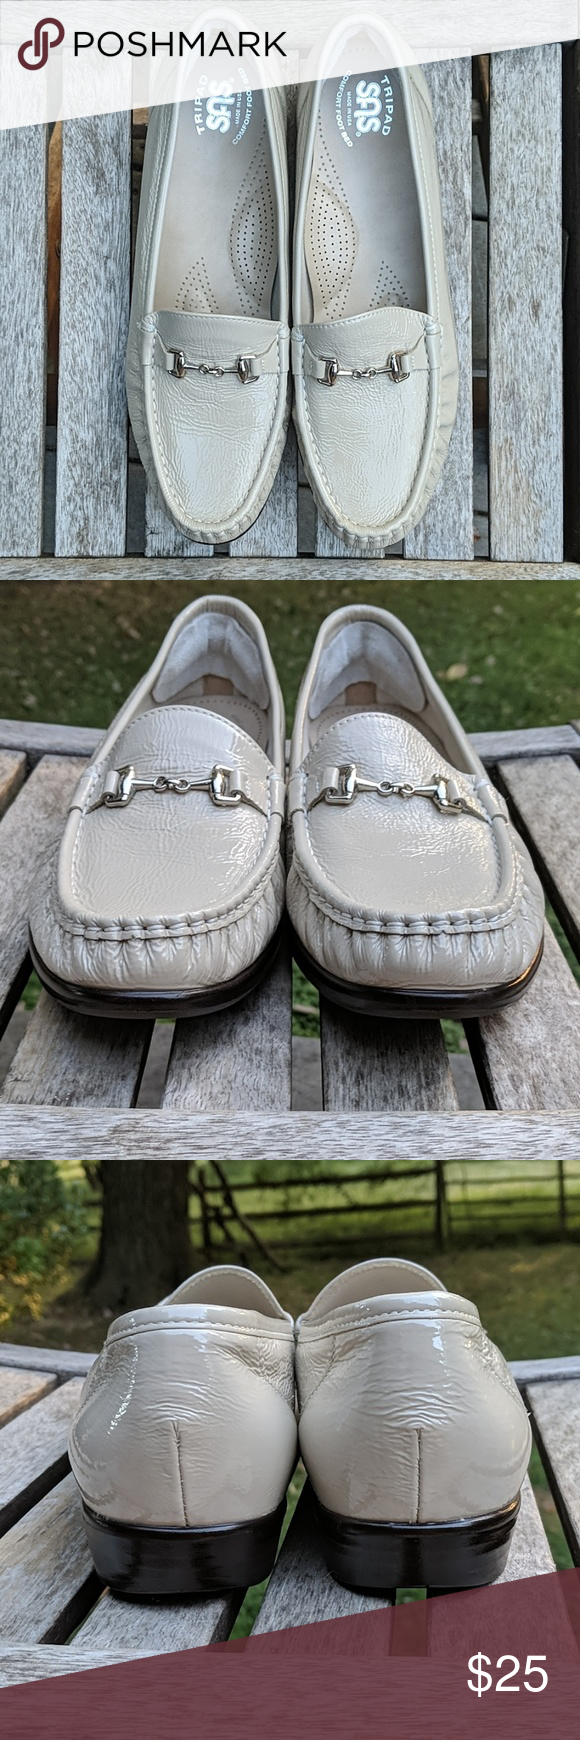 SAS Metro Slip-on Loafer Patent Leather NARROW Excellent pre-owned condition. Comfort pads have been placed on heels (pictured).  This style was designed to provide wiggle room at the toe and meant to hug in the back without rubbing or biting. You'll come to love Mondays when you slip into the foot-hugging comfort of the Metro moccasin. Soft and supple leather uppers with a hand laced moccasin toe and metal bit at vamp. Easy slip-on design. Ultra-soft leather linings for a cozy and breathable we #pictureplacemeant